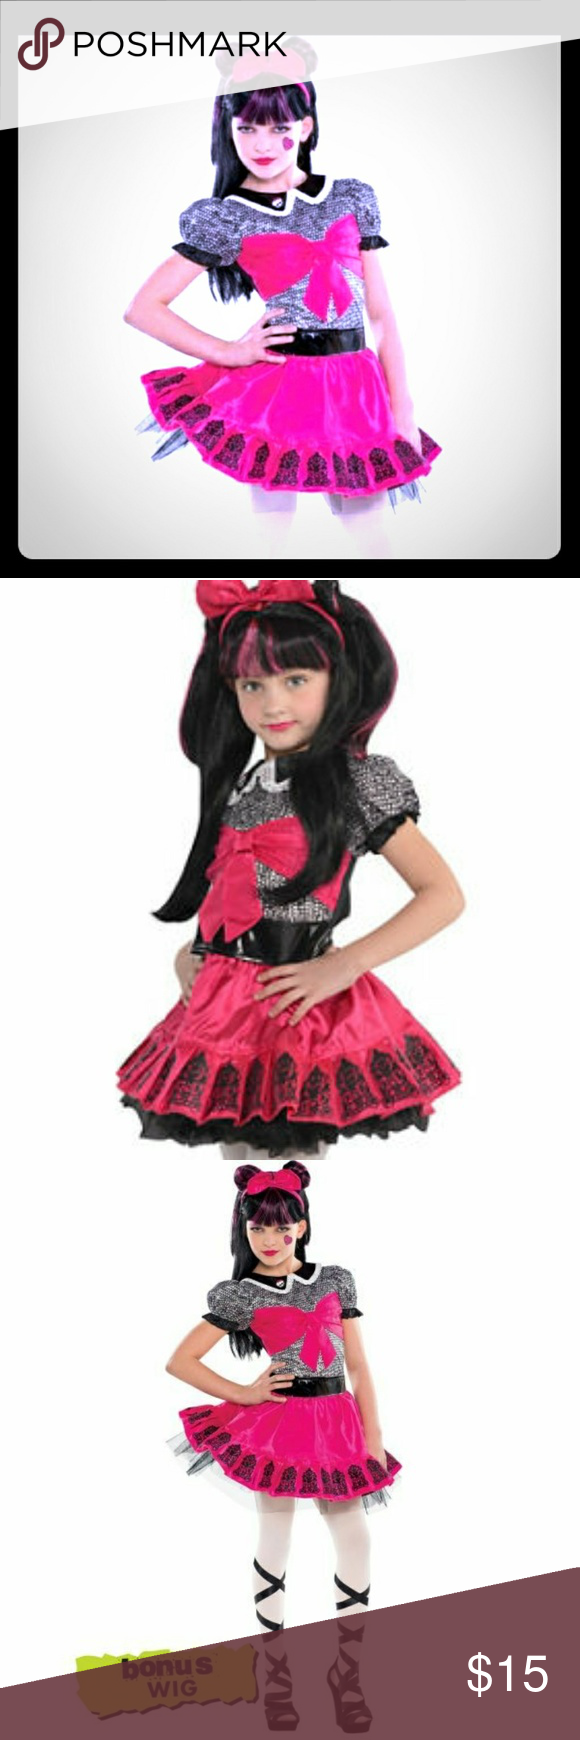 Girls Draculaura Halloween Costume Look your best for the Monster High fearbook in our Little Girls Draculaura Costume! Never Worn.  sc 1 st  Pinterest & Girls Draculaura Halloween Costume | Draculaura costume Halloween ...